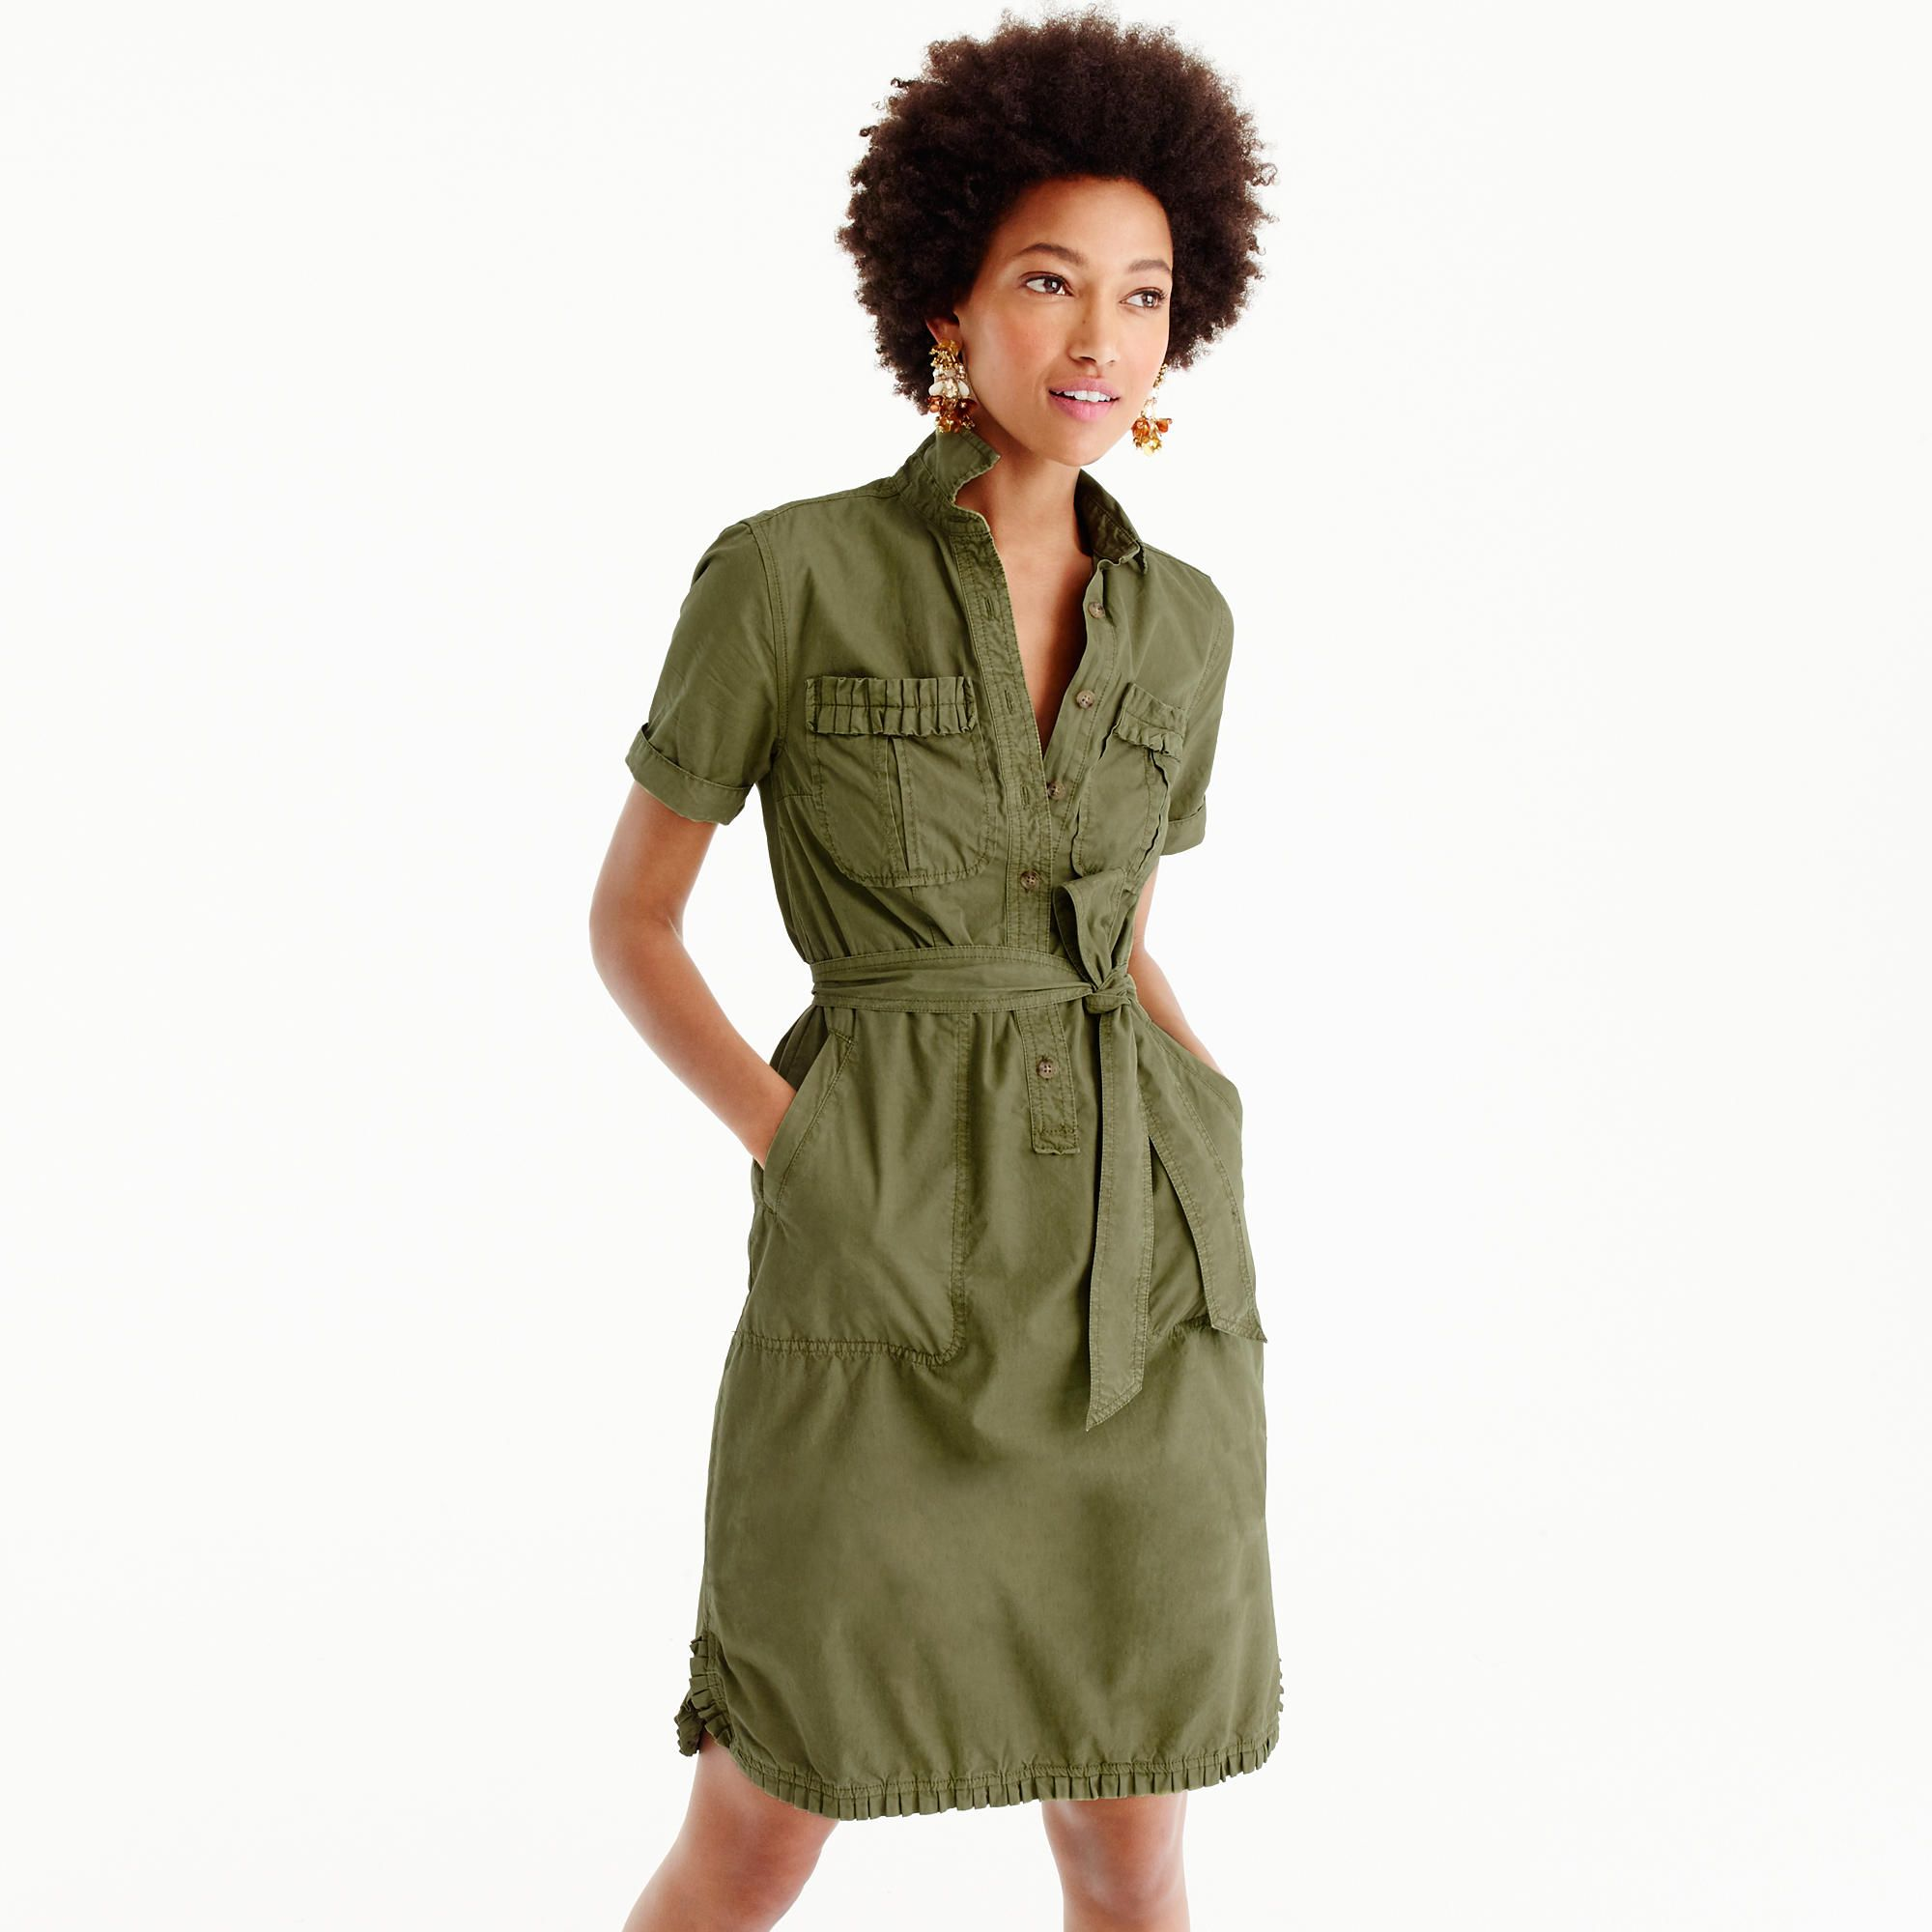 Ruffle Hem Utility Dress Women Dresses J Crew